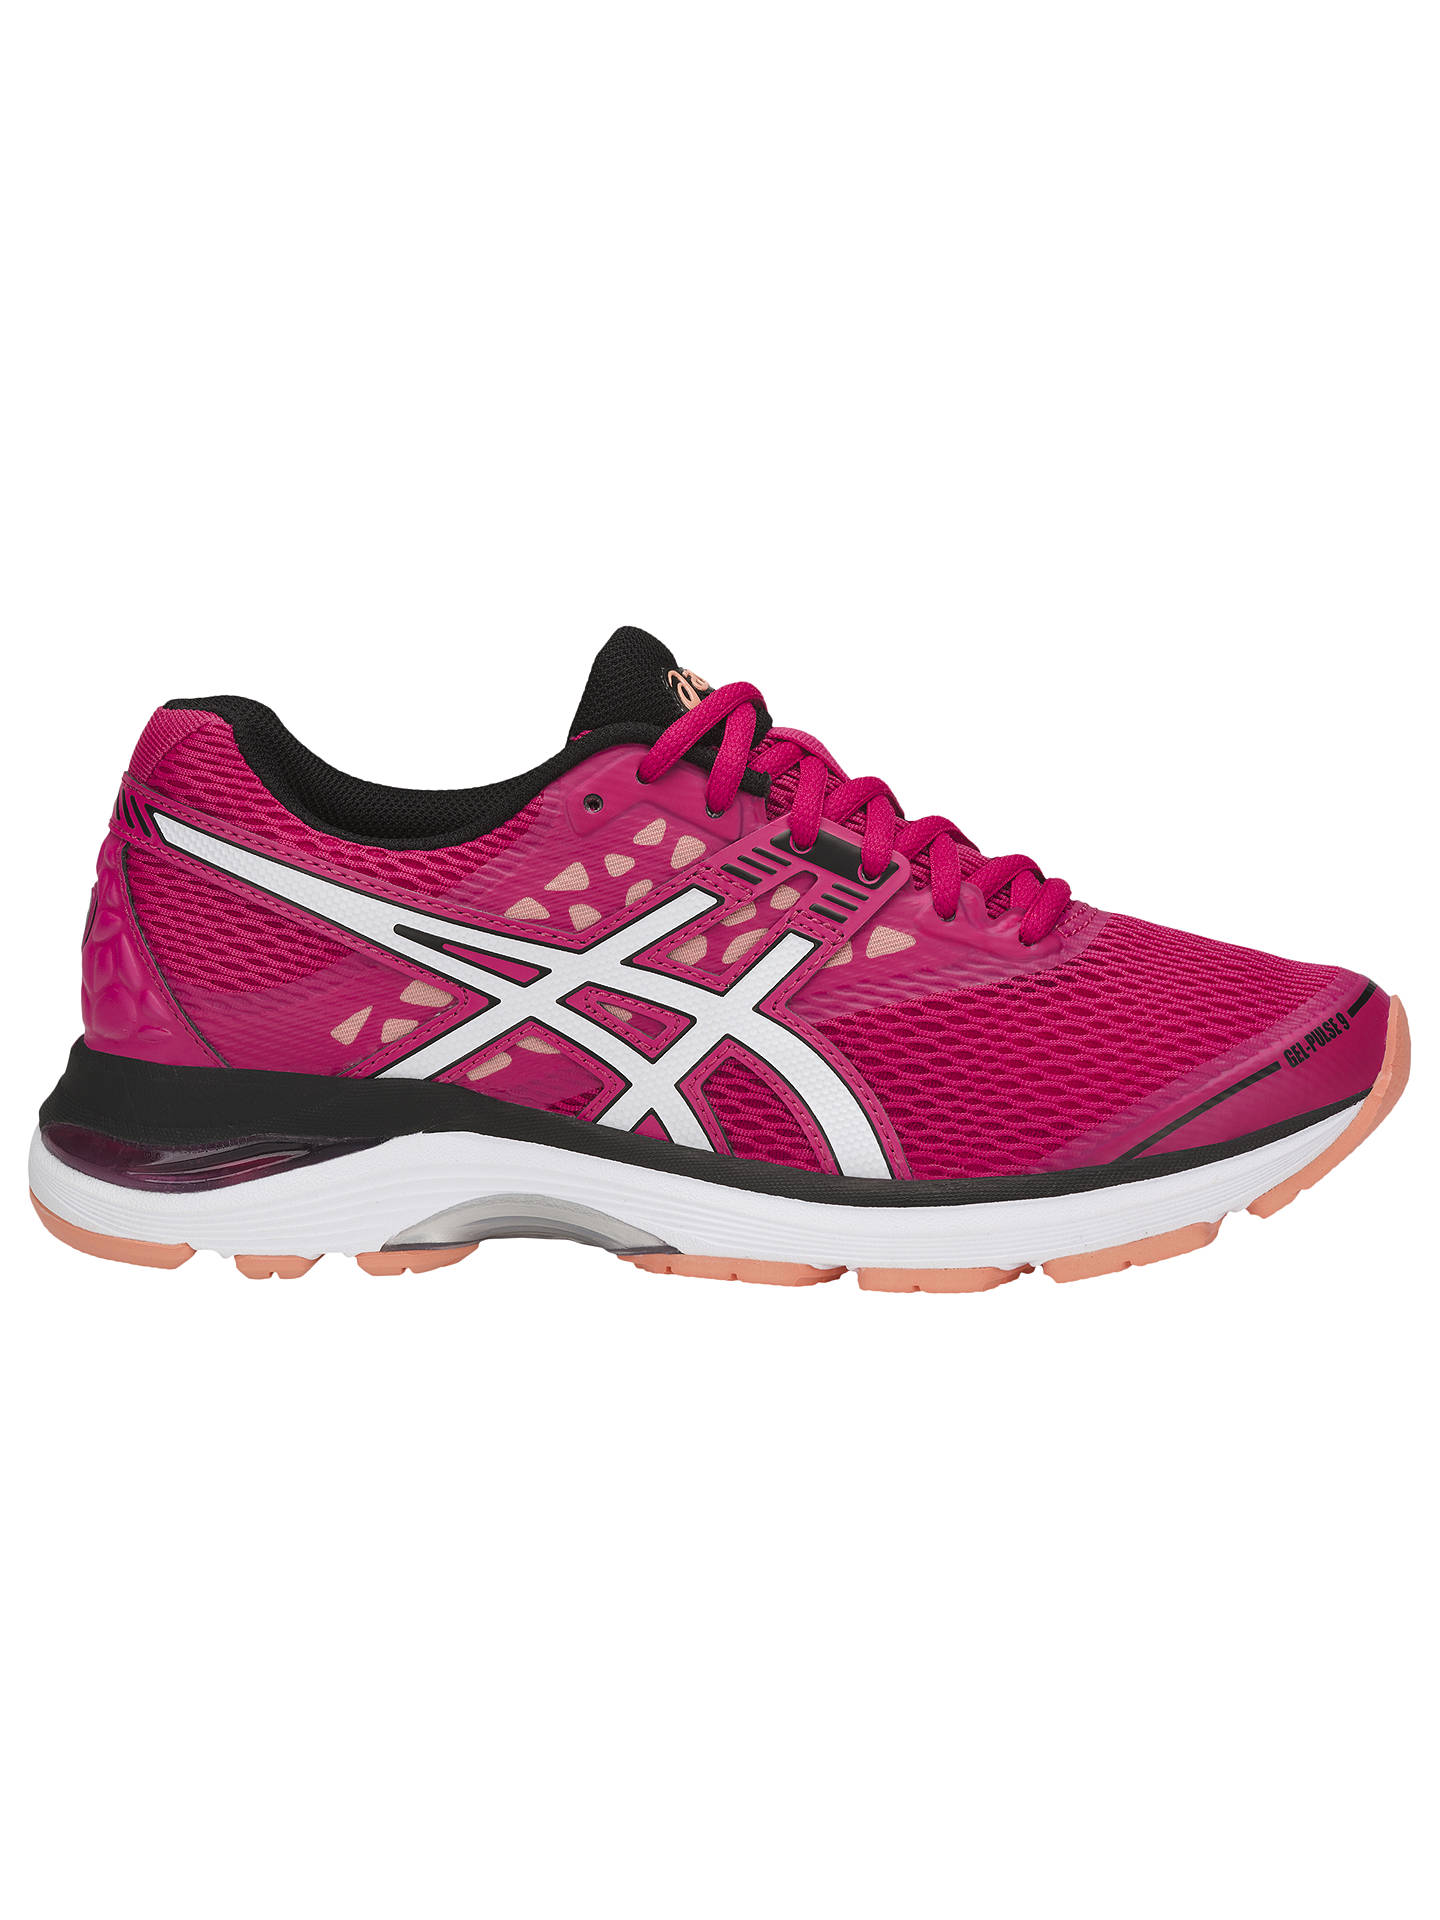 ASICS Women's Gel Pulse 9 Running Shoes